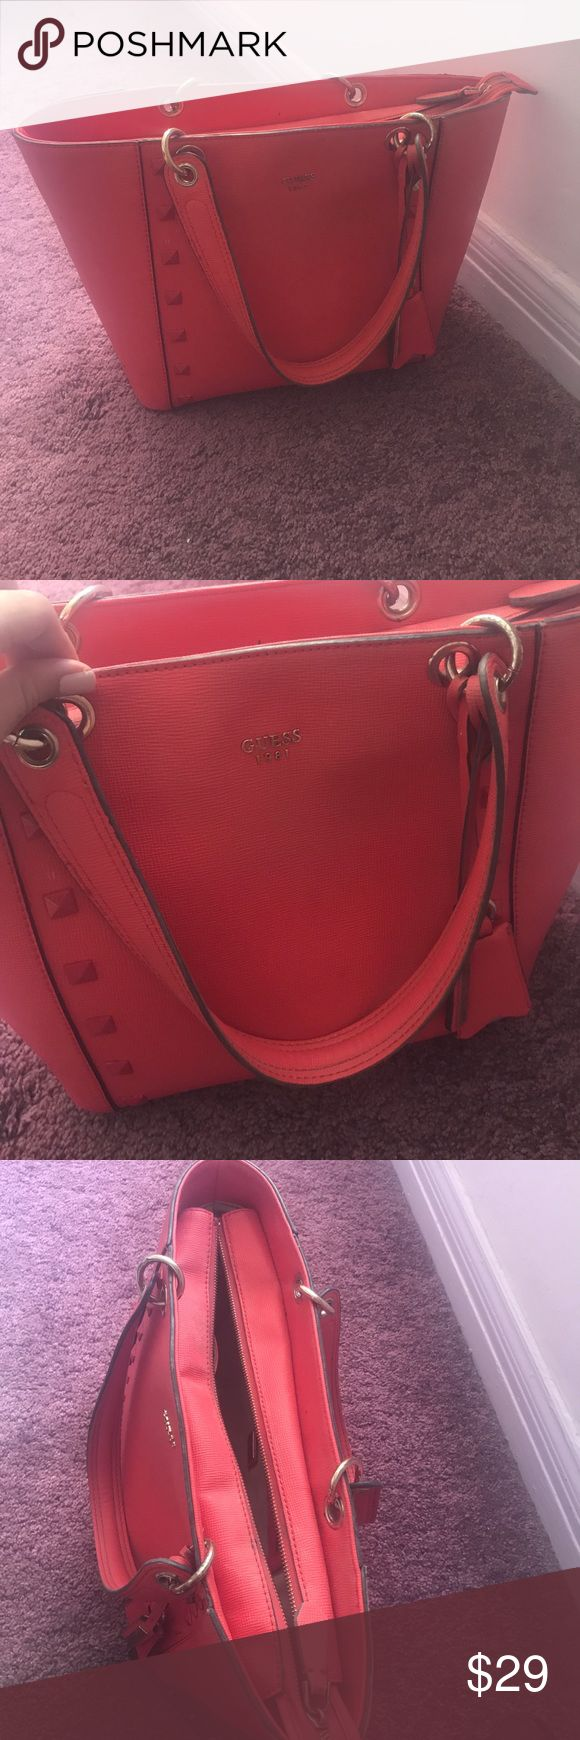 """Guess Kamryn Extra-Large Tote in Lipstick Red Extra large sized bag: 16-1/2""""W x 10-1/2""""H x 6""""D. 8-3/4""""L double handles. Zip closure. Exterior features 1 zip pocket, logo &a charm. 1 interior zip pocket & 3 slip pockets. Laptop compatible (std. size 13"""" - 15""""). Faux Leather. Note: inside is dirty (as shown in last picture) and needs to be cleaned. Guess Bags Totes"""